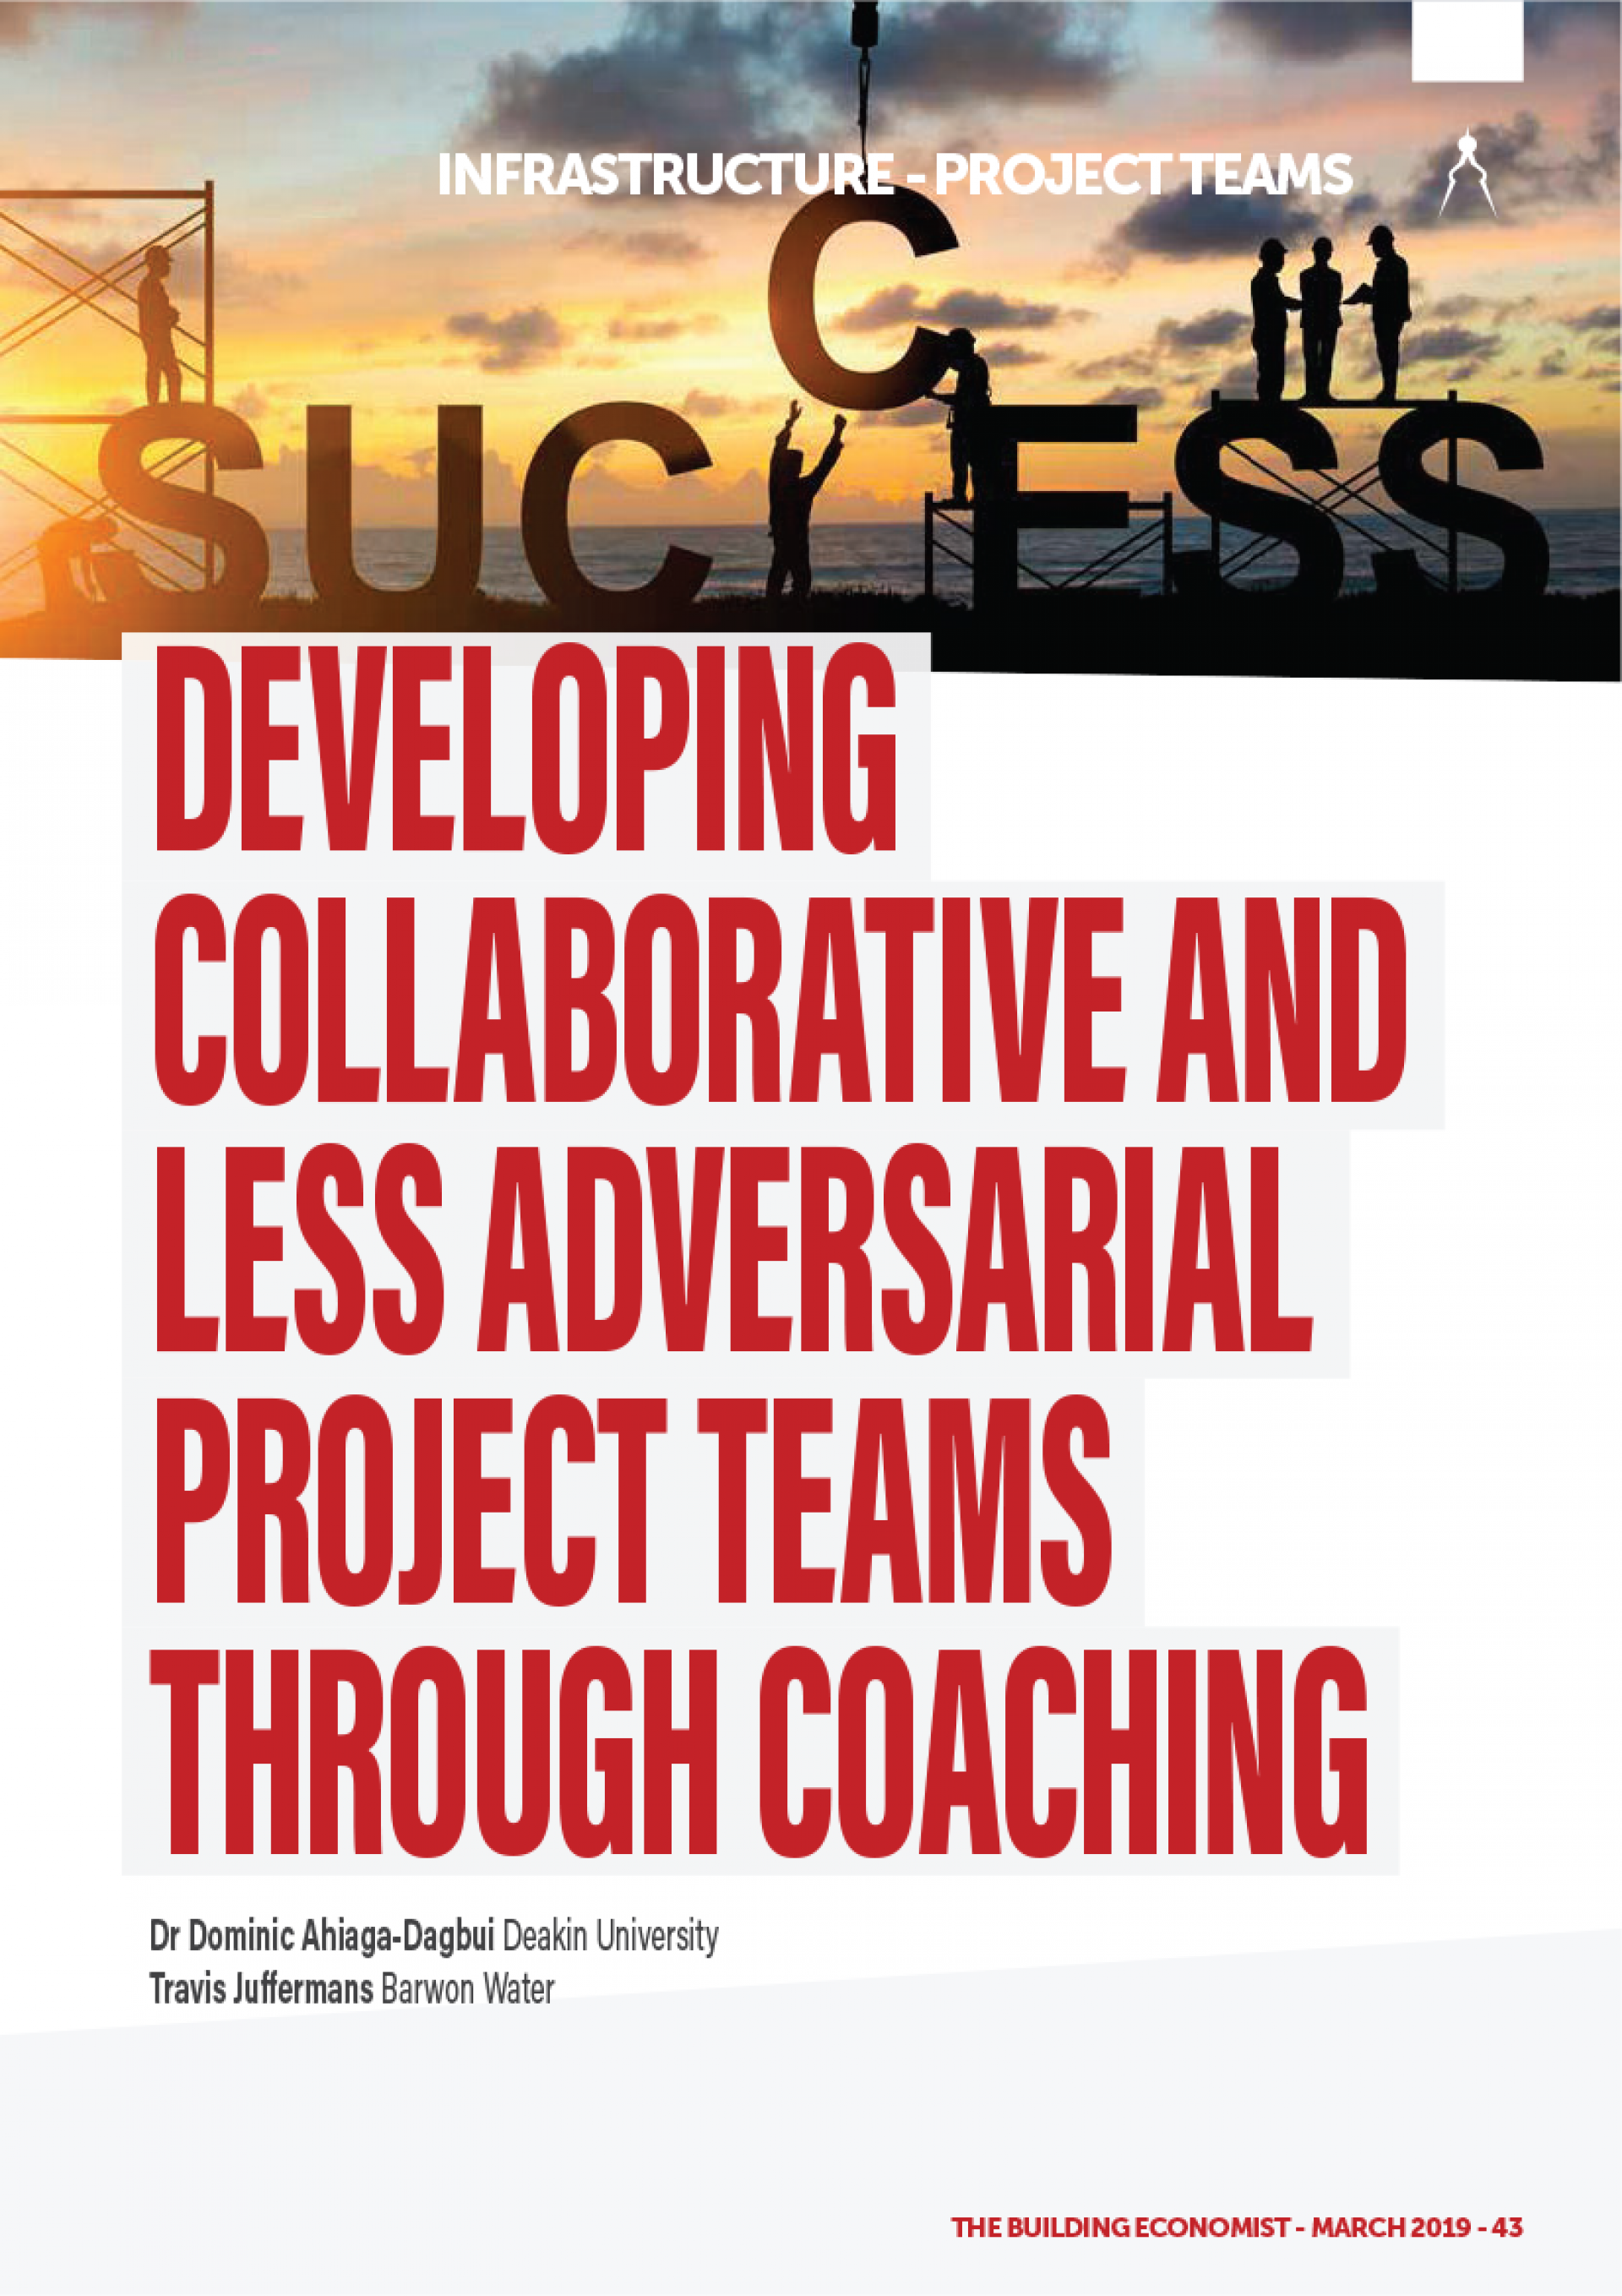 Developing collaborative and less adversarial project teams through coaching.